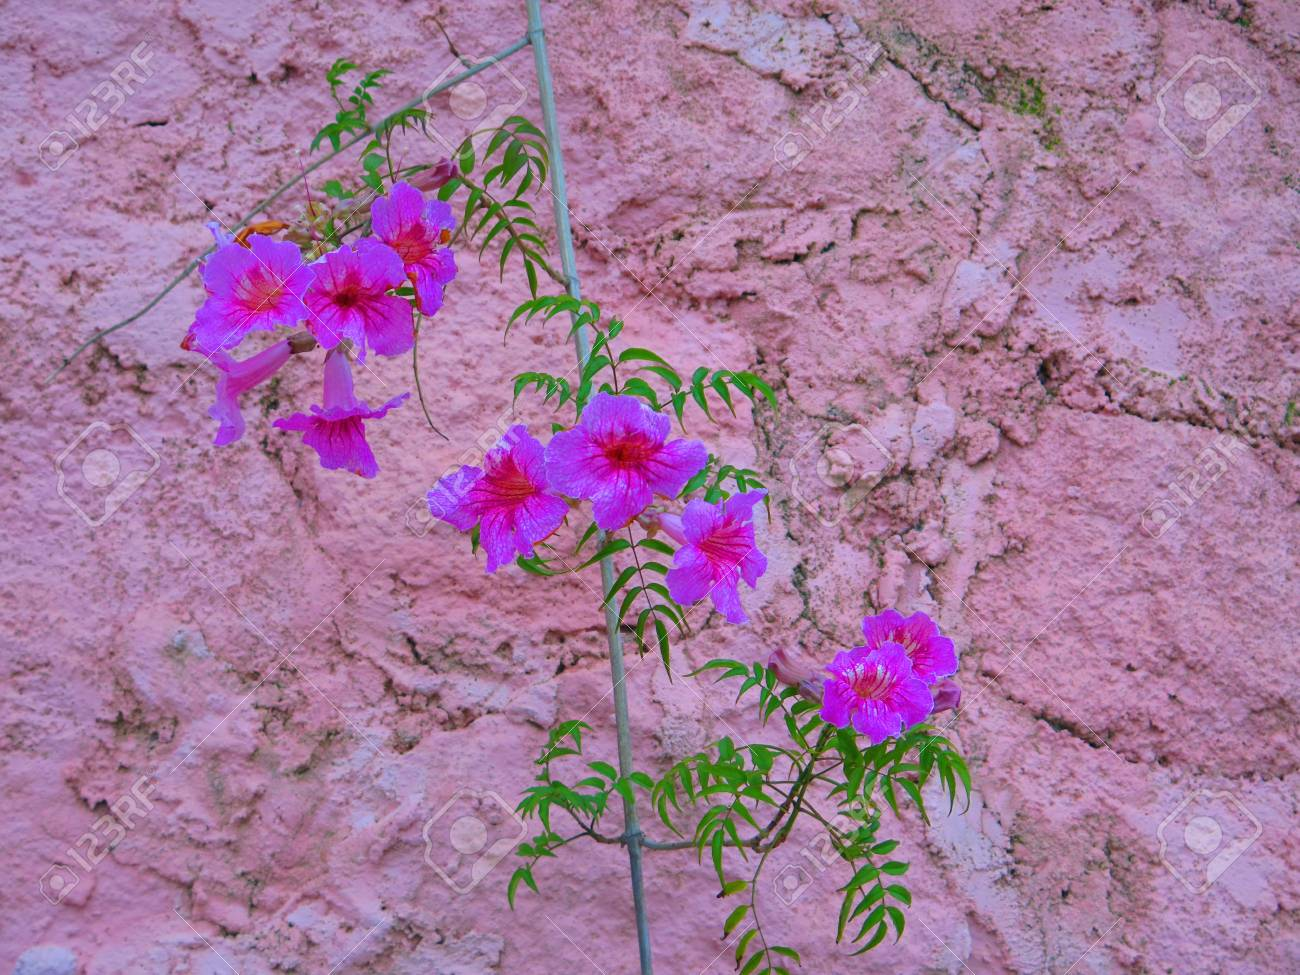 Climbing Bower Vine Showing Purple Flowers Against Pink Wall